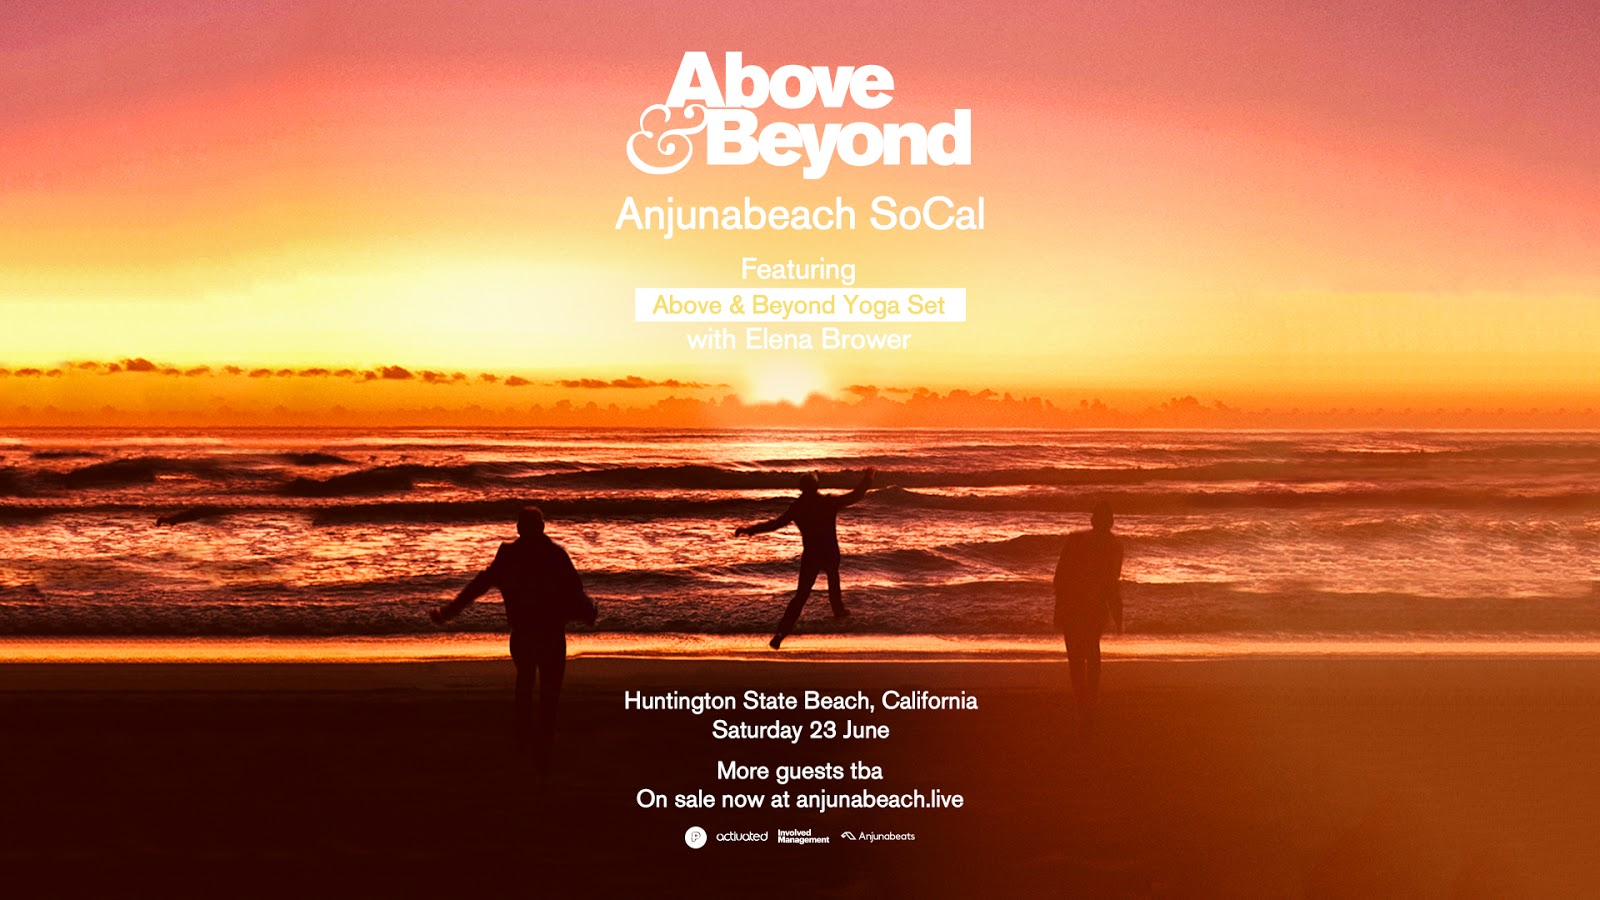 Up-Level Your Yoga Practice With Above & Beyond At AnjunaBeach